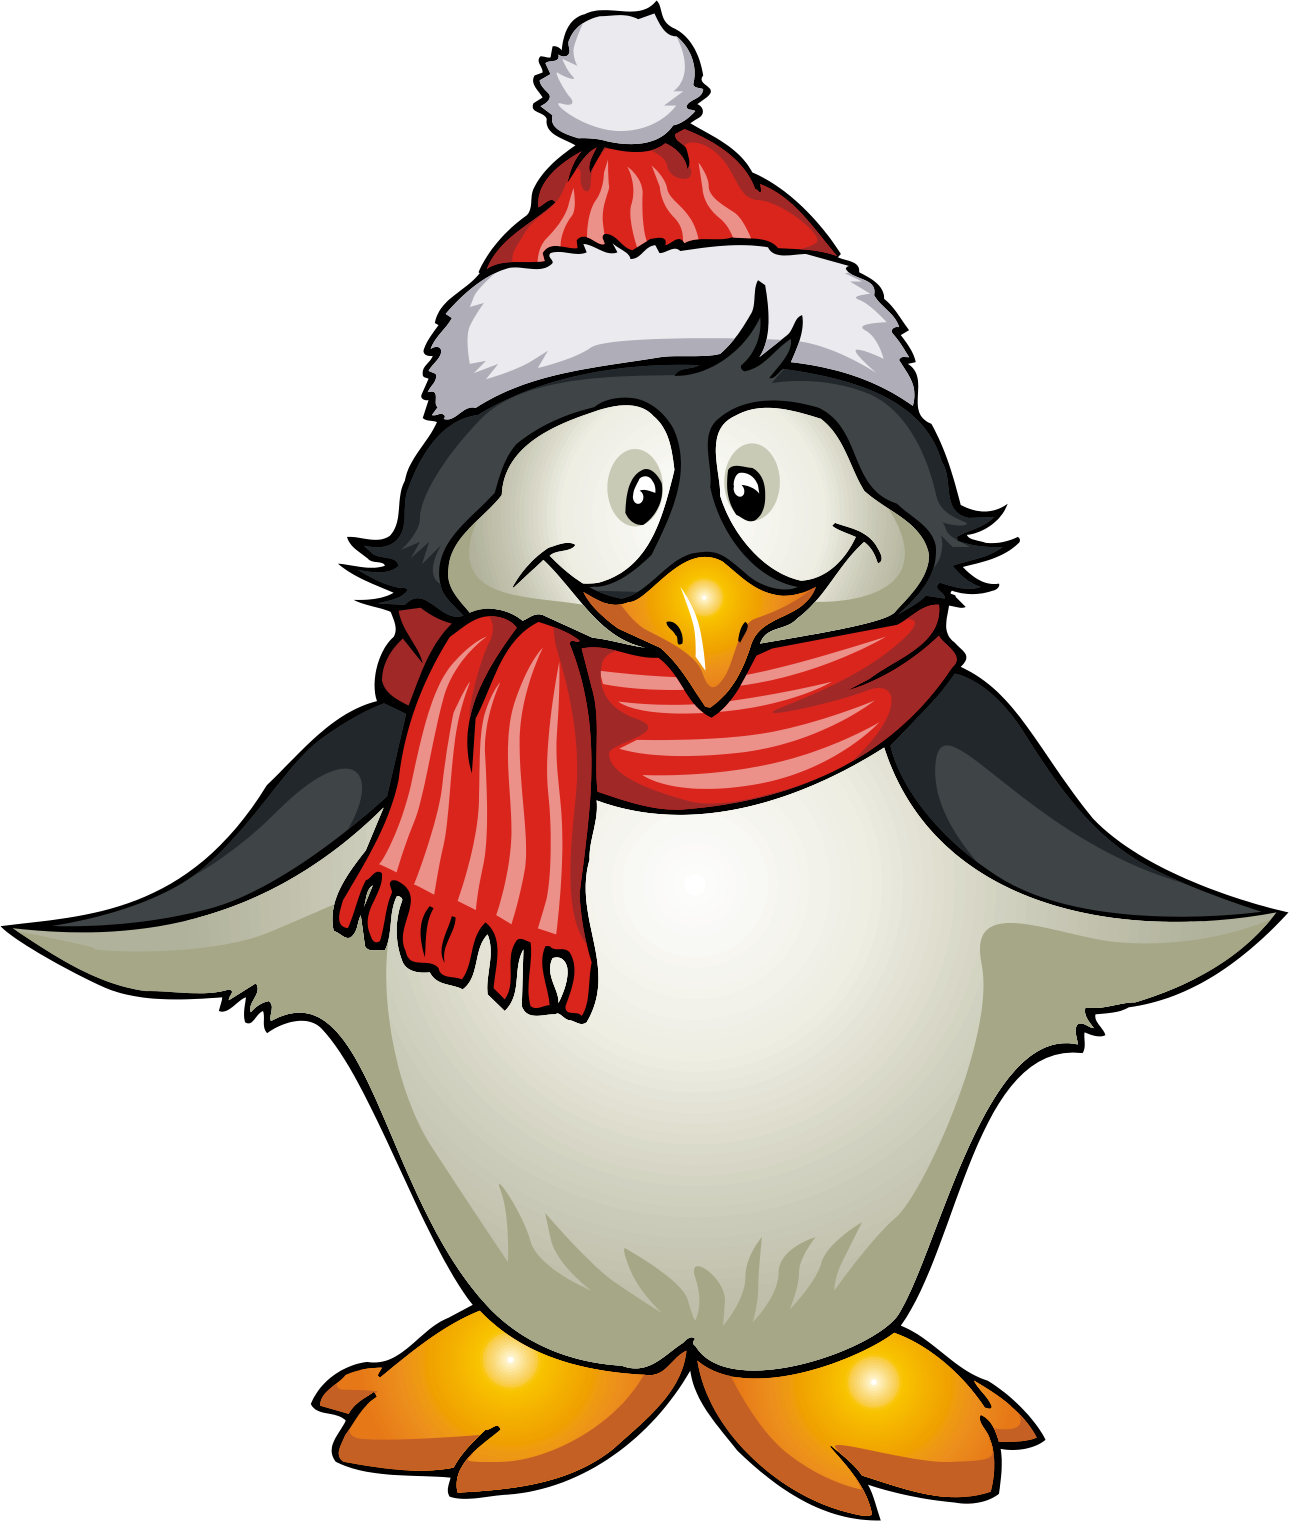 Winter xmas free clipart picture free Free Winter Christmas Cliparts, Download Free Clip Art, Free ... picture free